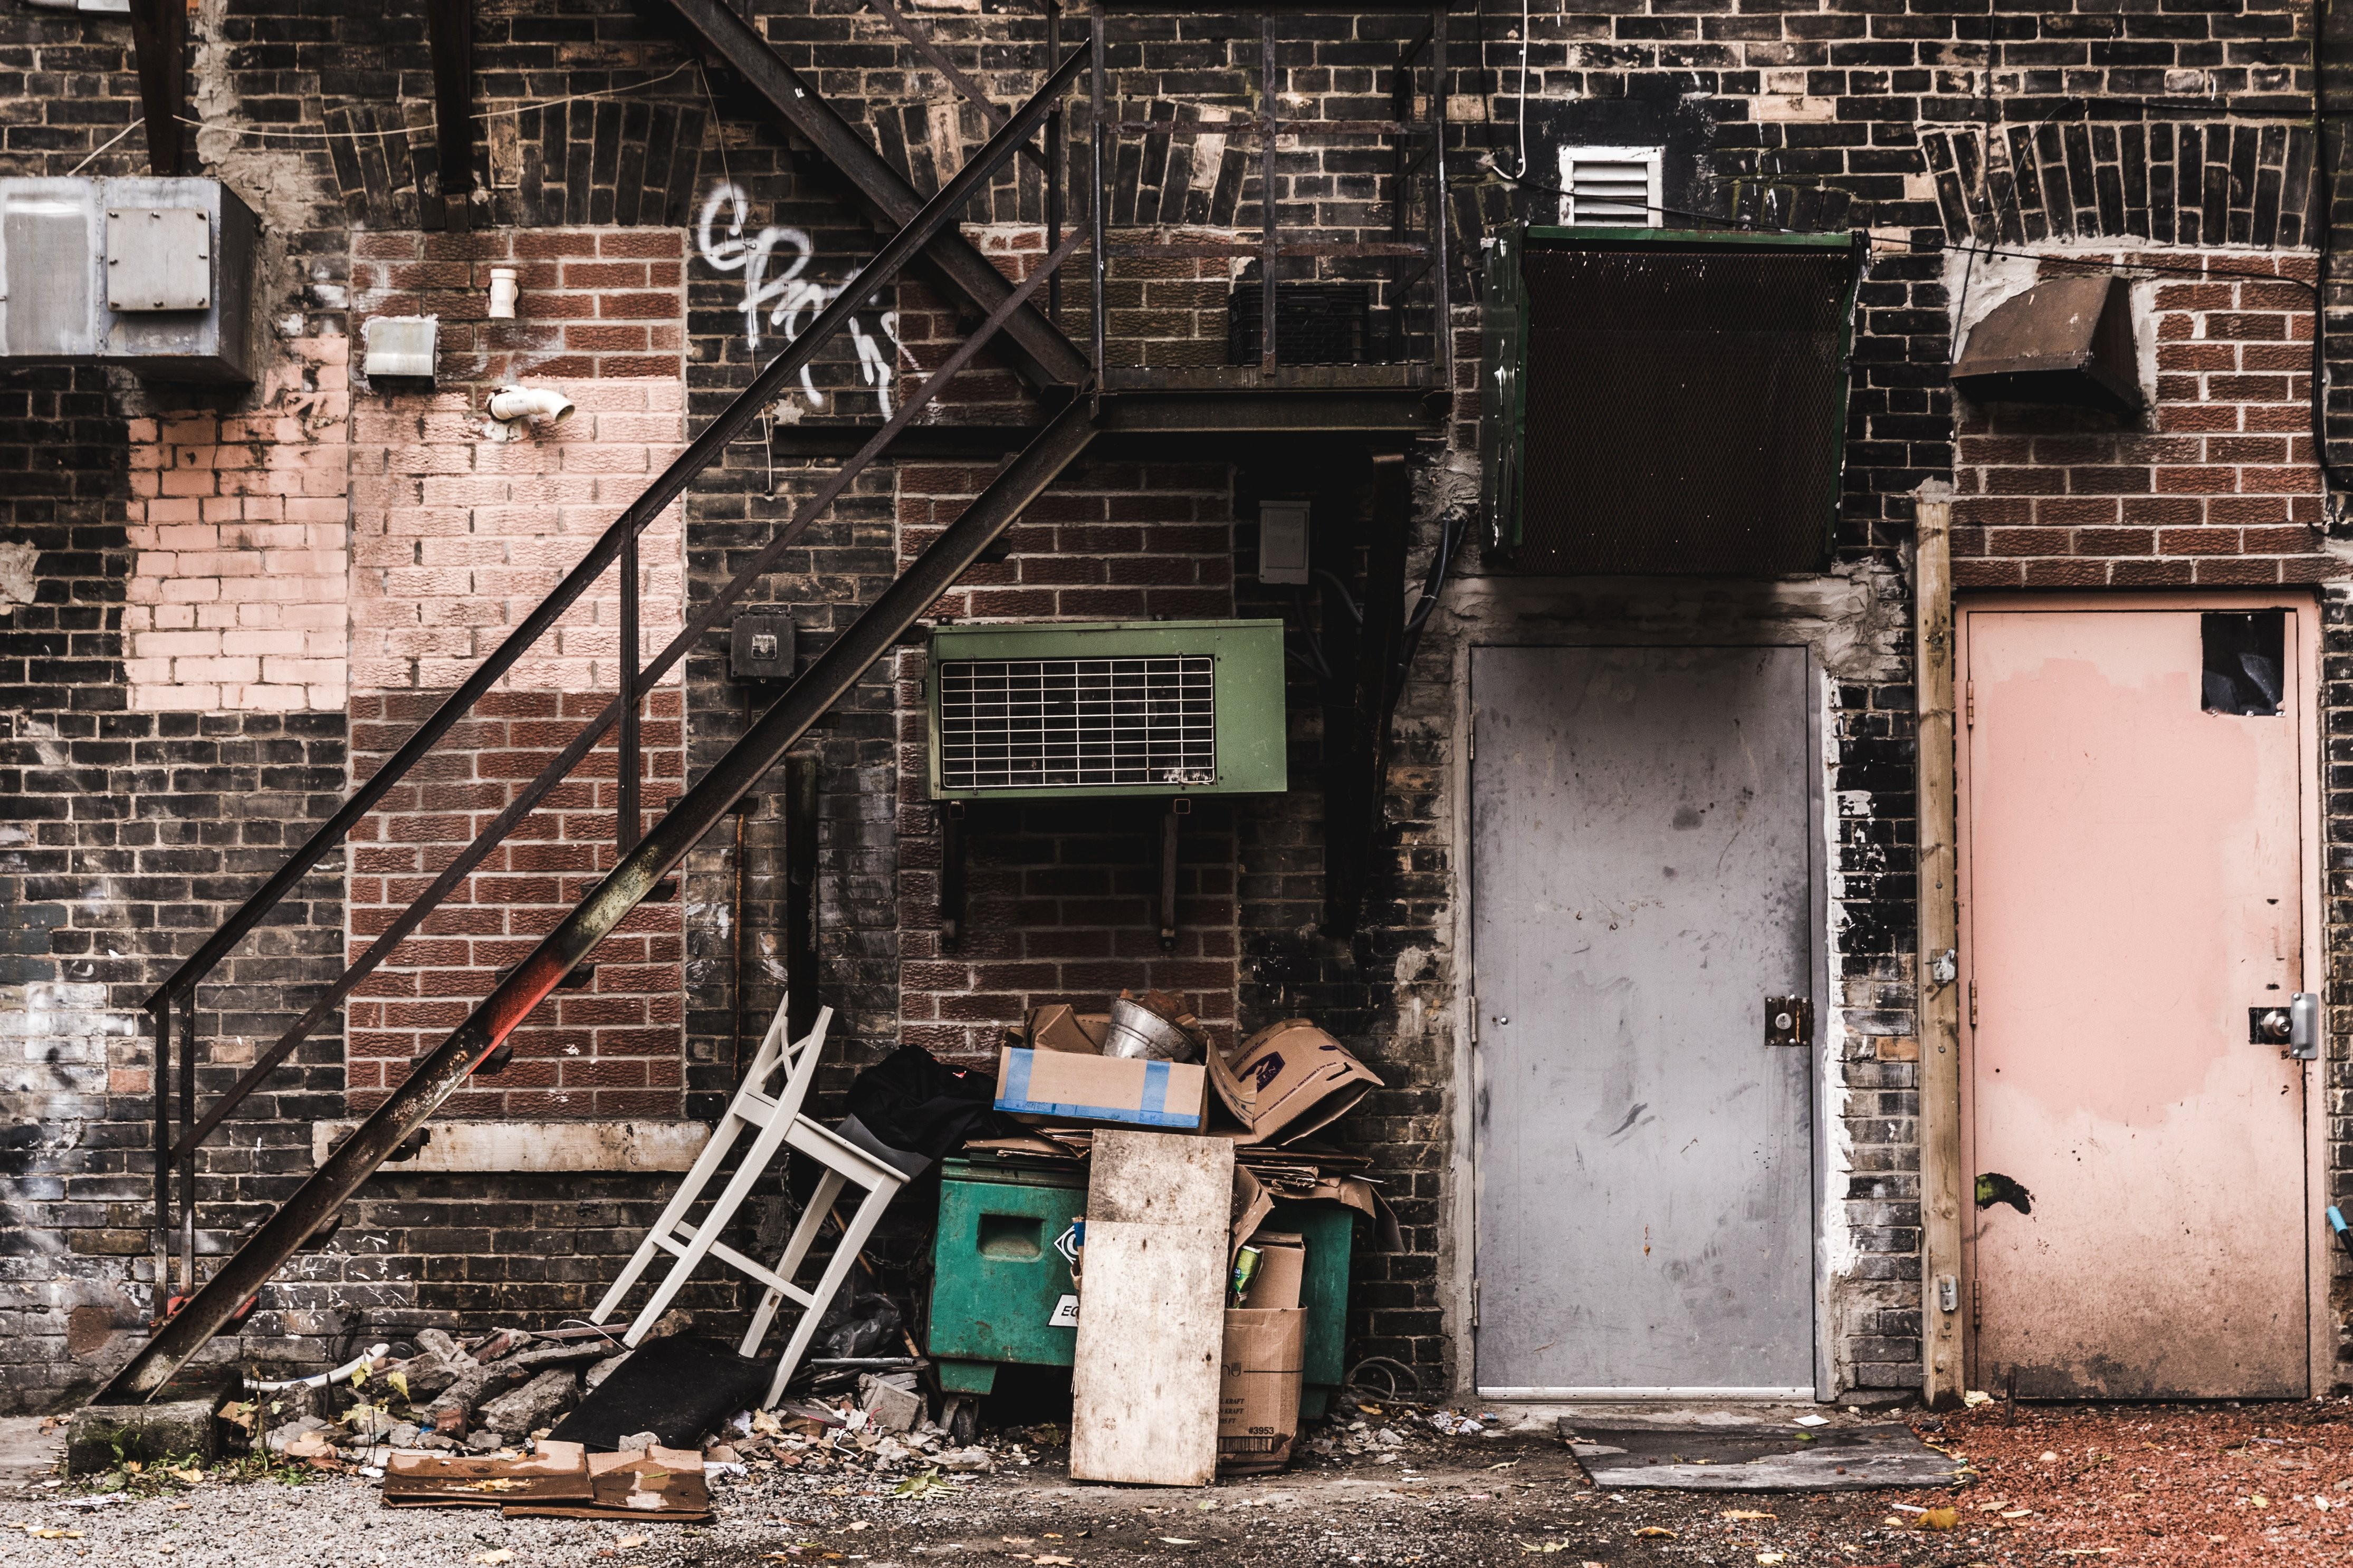 grungy-back-alley-in-the-city